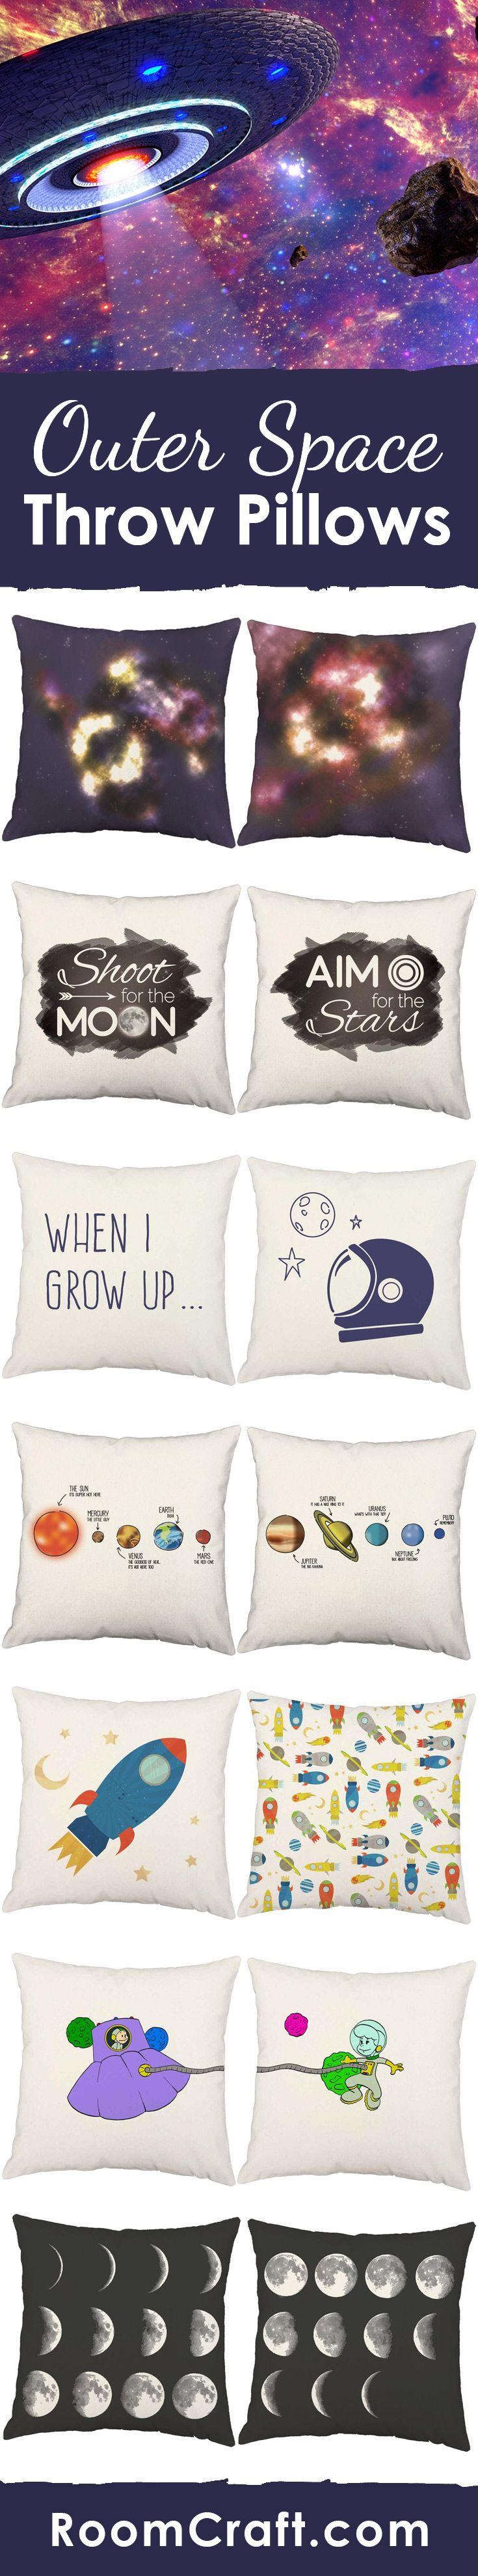 These space throw pillows are out of this world. Click on the link below to see all of the fun and colorful designs available or save to your board for later. Many fabric and size options to choose from to create the perfect outer space pillow cover for any room in your home. #roomcraft makes decorating fun and easy!  https://roomcraft.com/collections/science-space?utm_source=pinterest&utm_medium=organic&utm_campaign=outerspace_pillows_lp_description